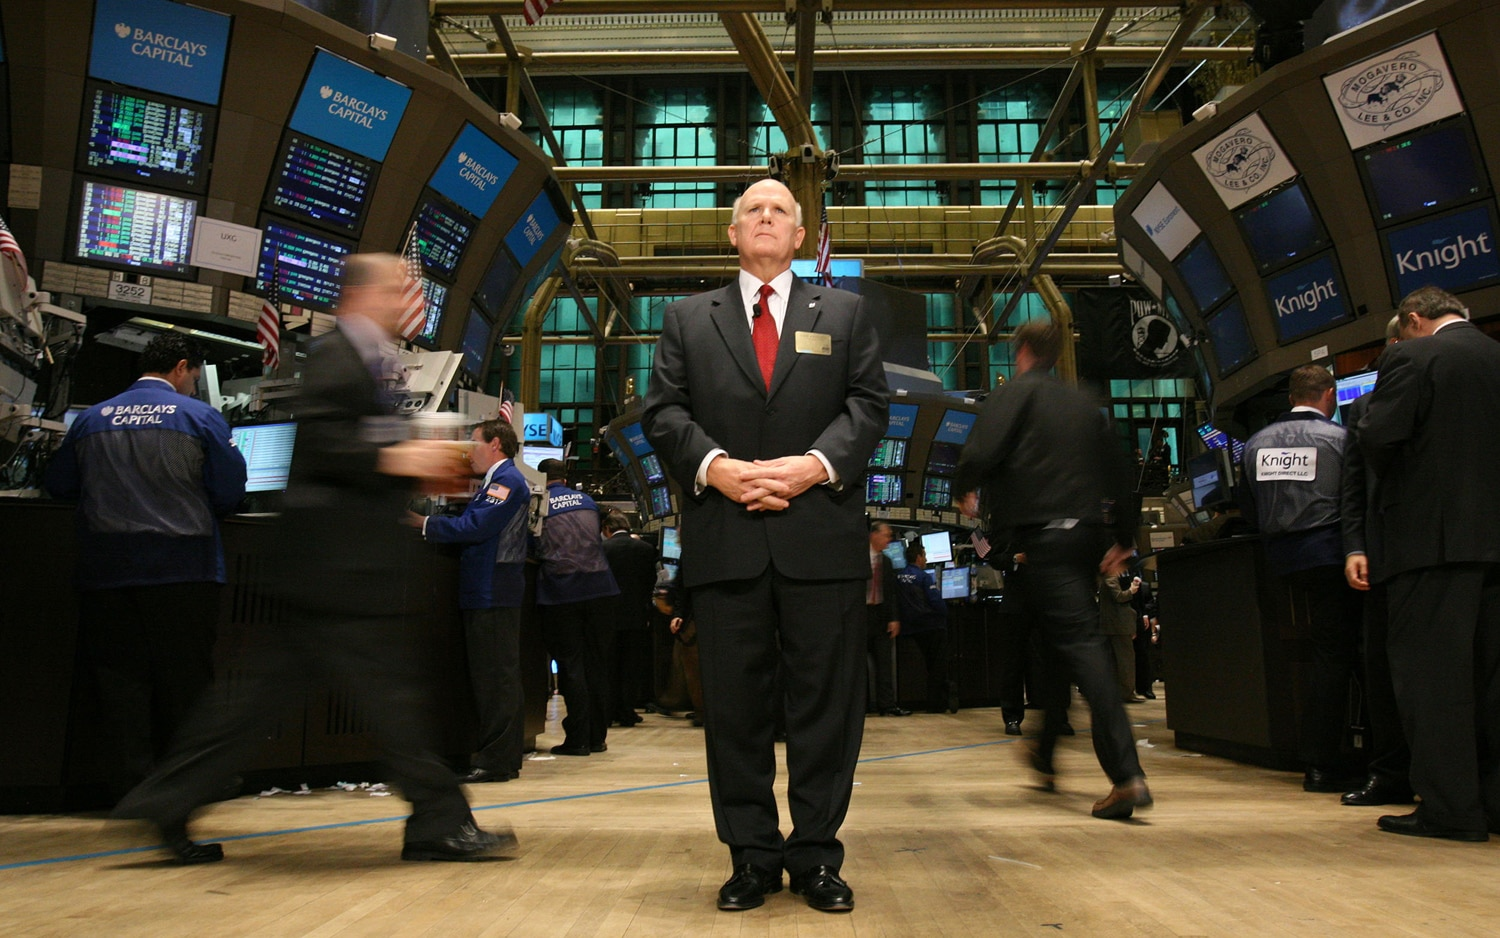 Gm Ceo Dan Akerson In New York Stock Exchange1